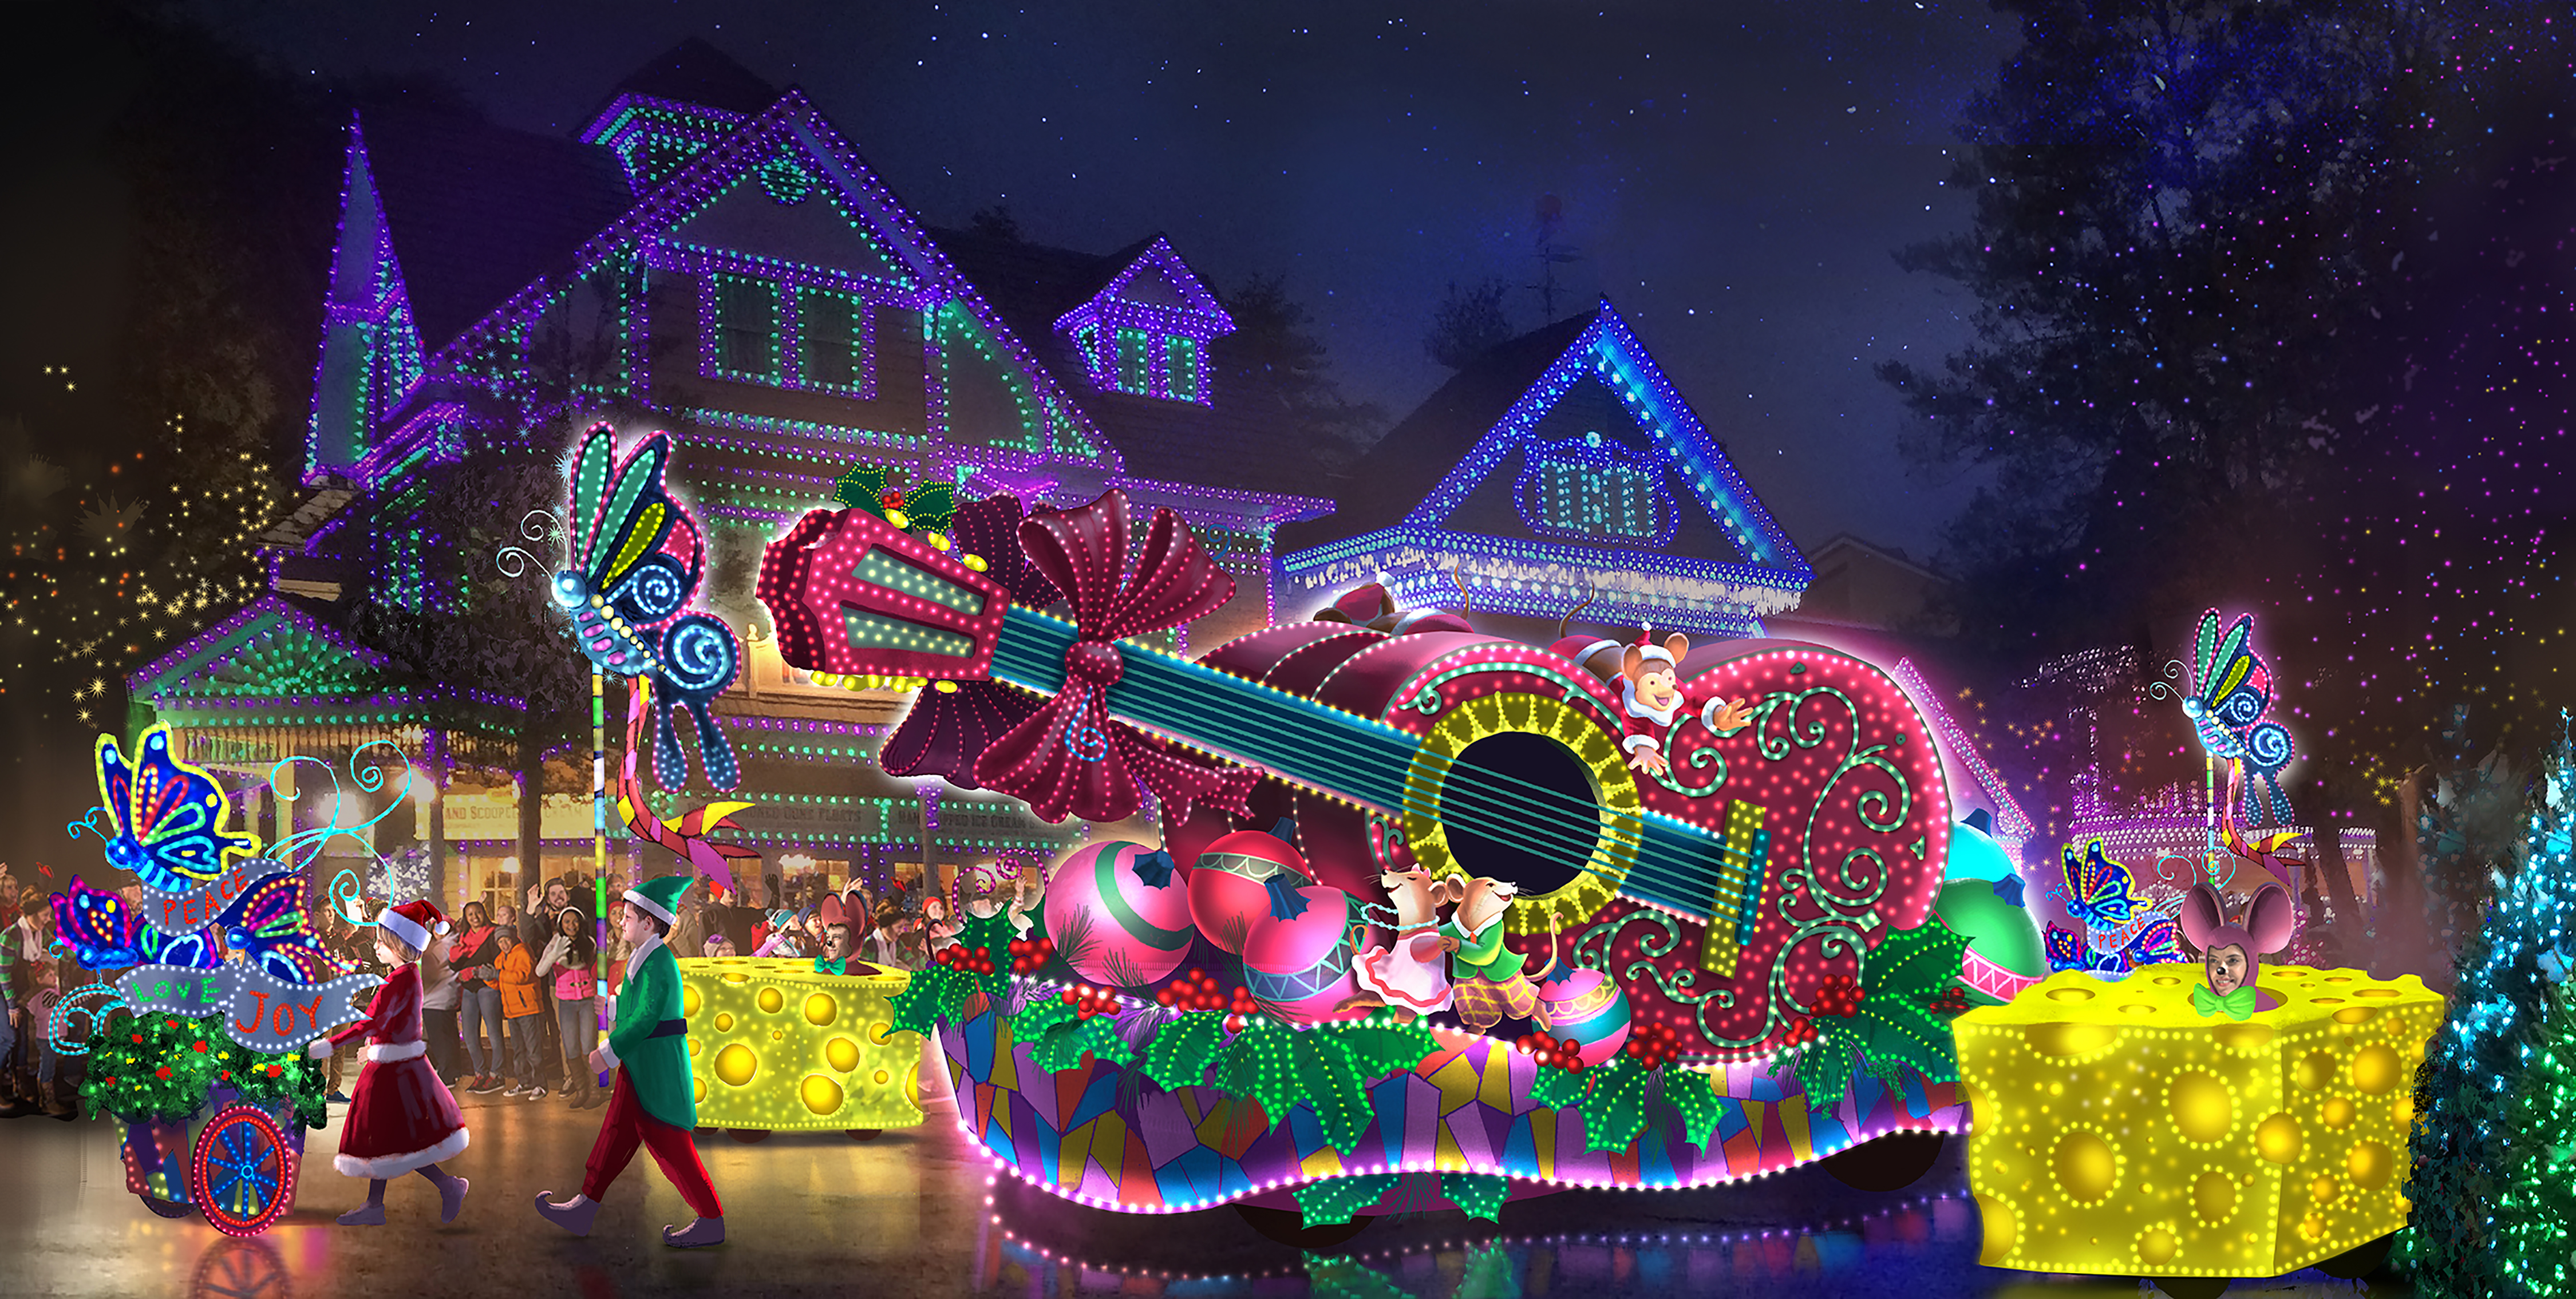 Dollywood Christmas Parade 2020 Dollywood announces $2.5 million Parade of Many Colors